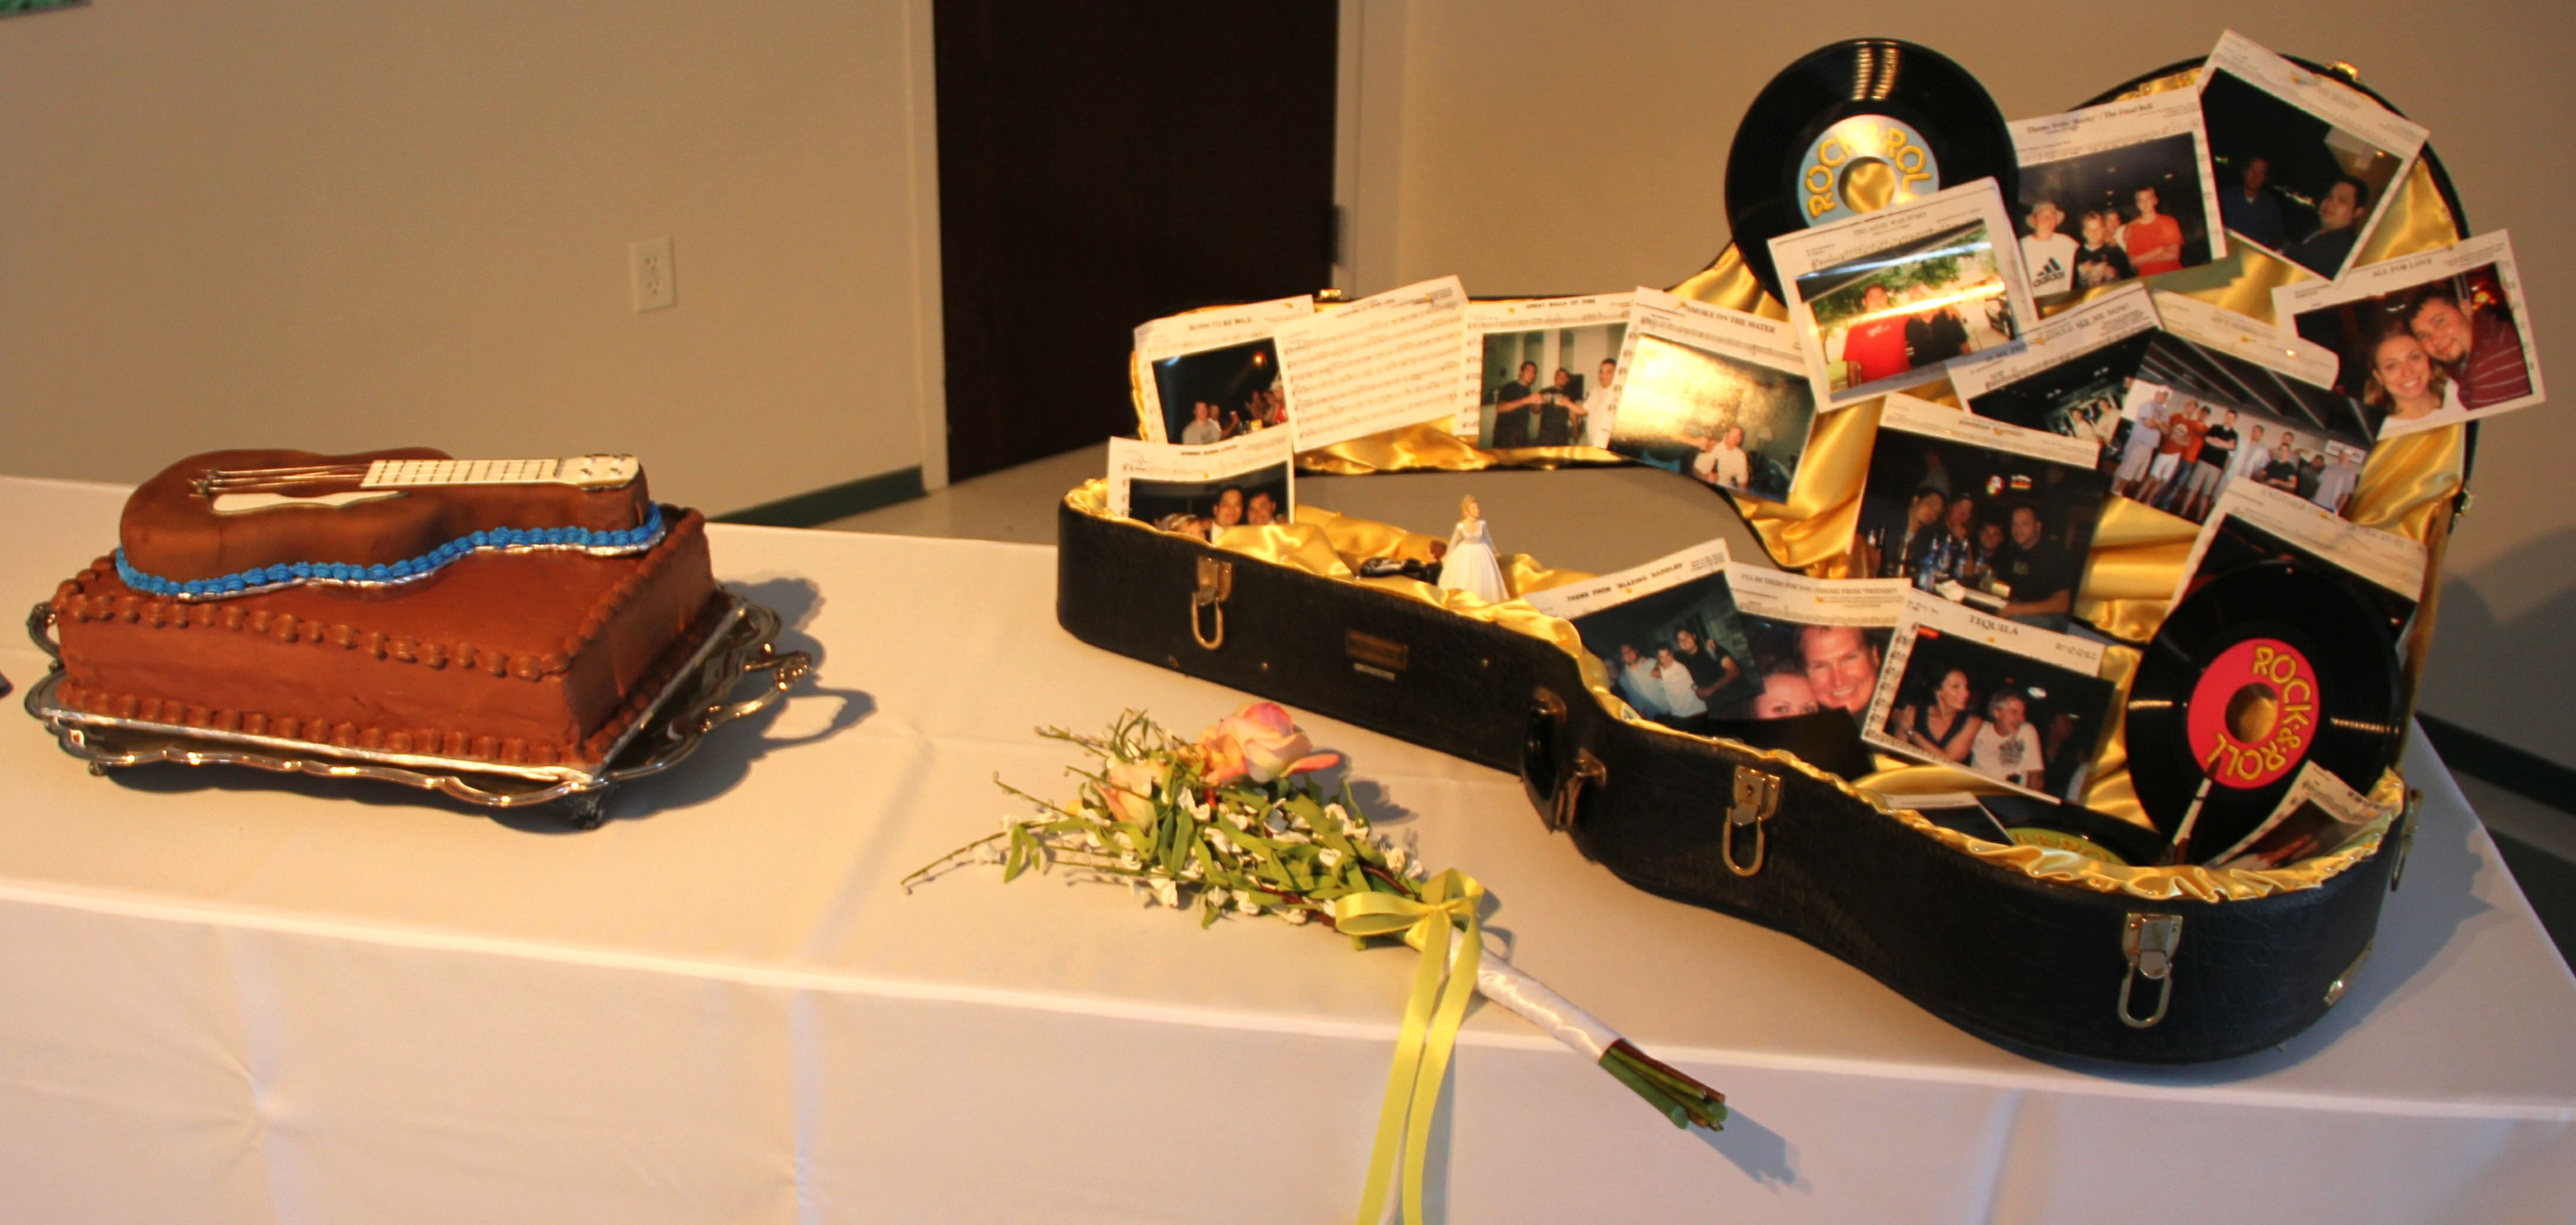 The guitar case is so cute for a little memory box! Ask guests to write words of encouragement, etc., and put them in!